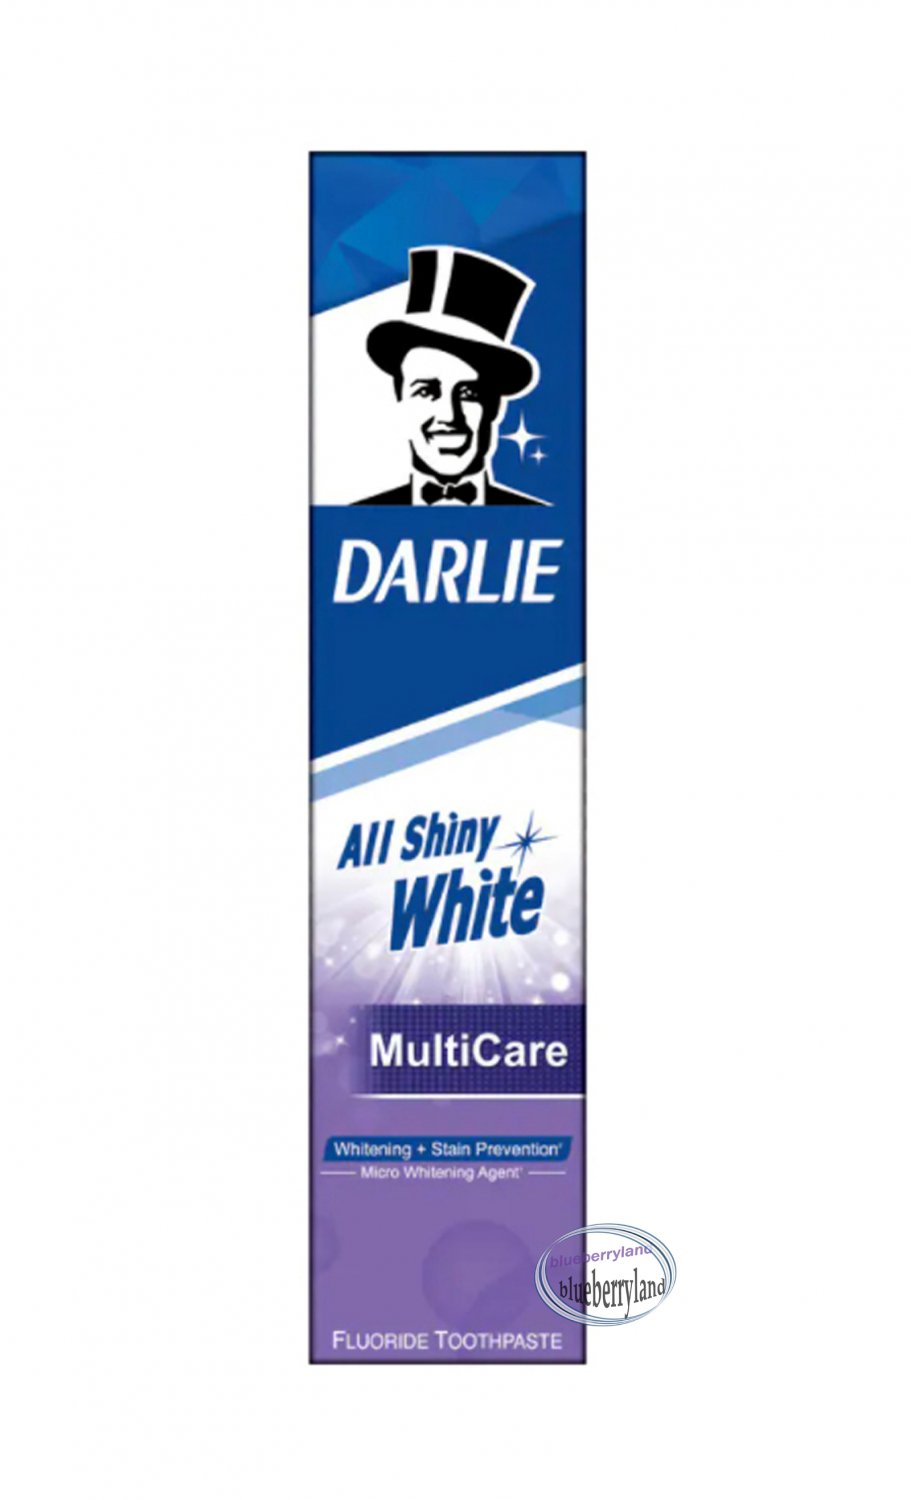 Darlie All Shiny White Multicare 140g Toothpaste Tooth Whitening Oral Care